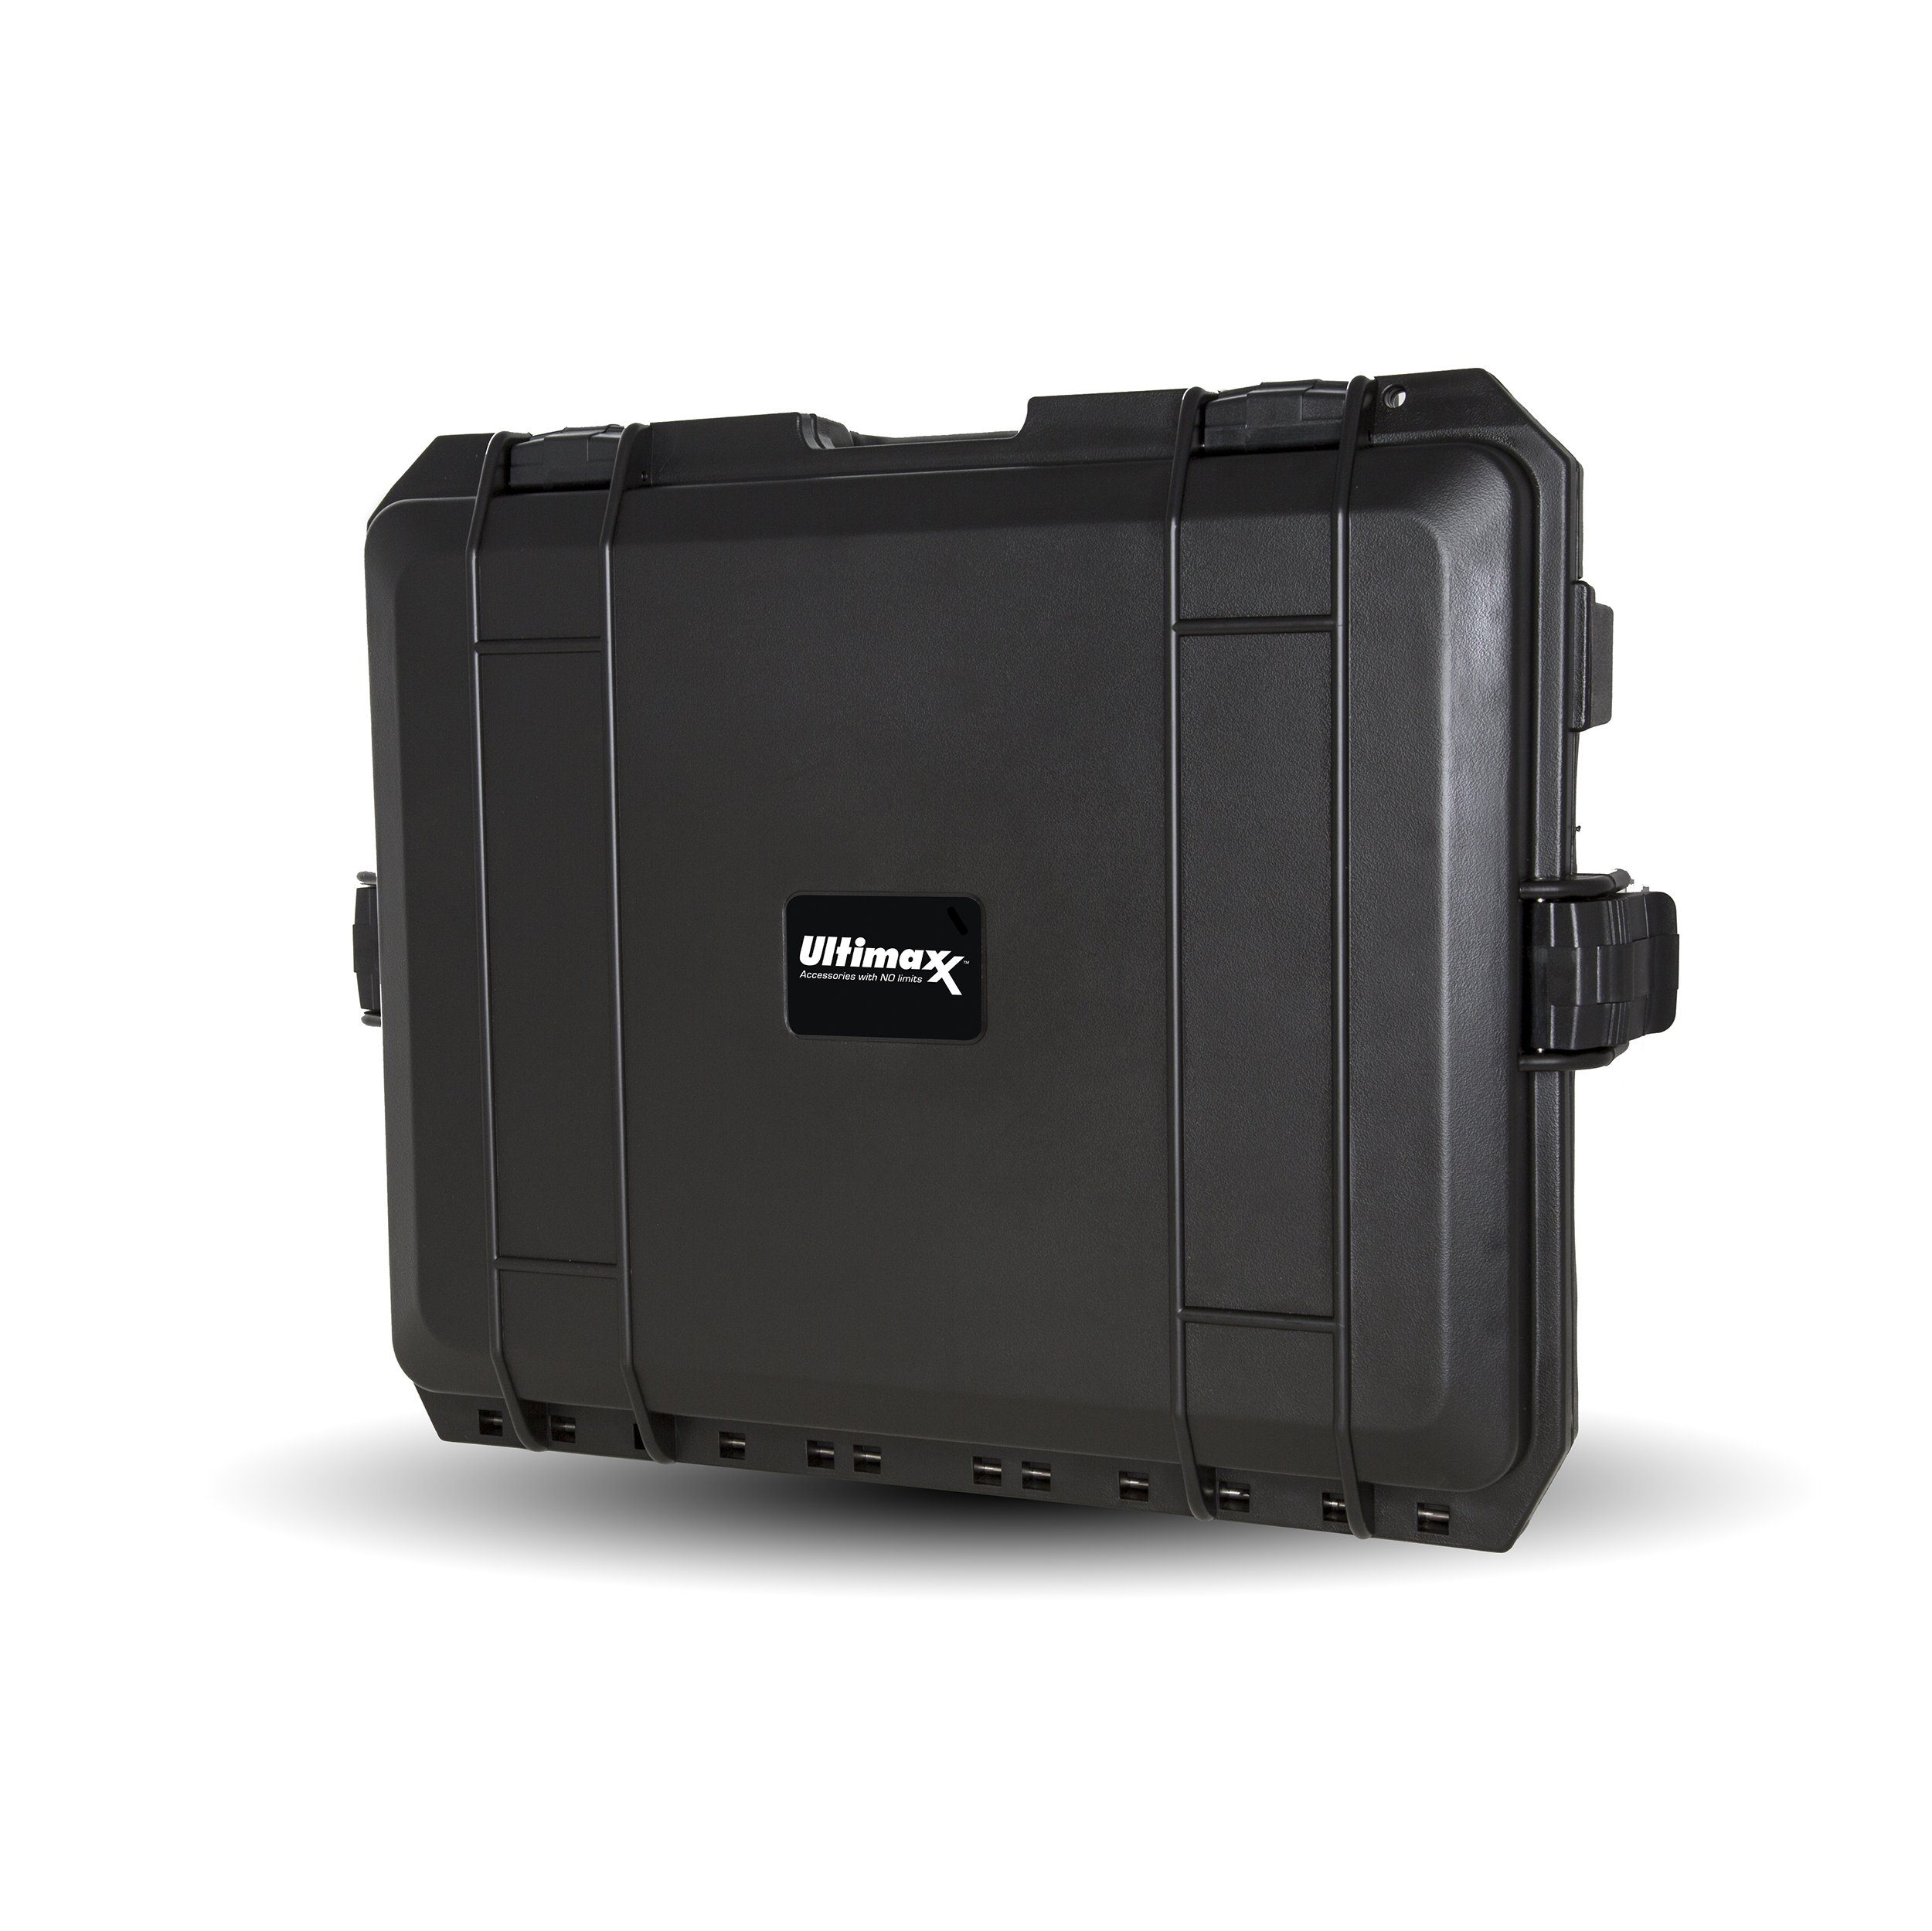 Ultimaxx Water Proof Rugged Compact Storage Hard Case for DJI FPV VR Goggles and DJI Mavic Air + Fits Extra Accessories by Ultimaxx (Image #7)